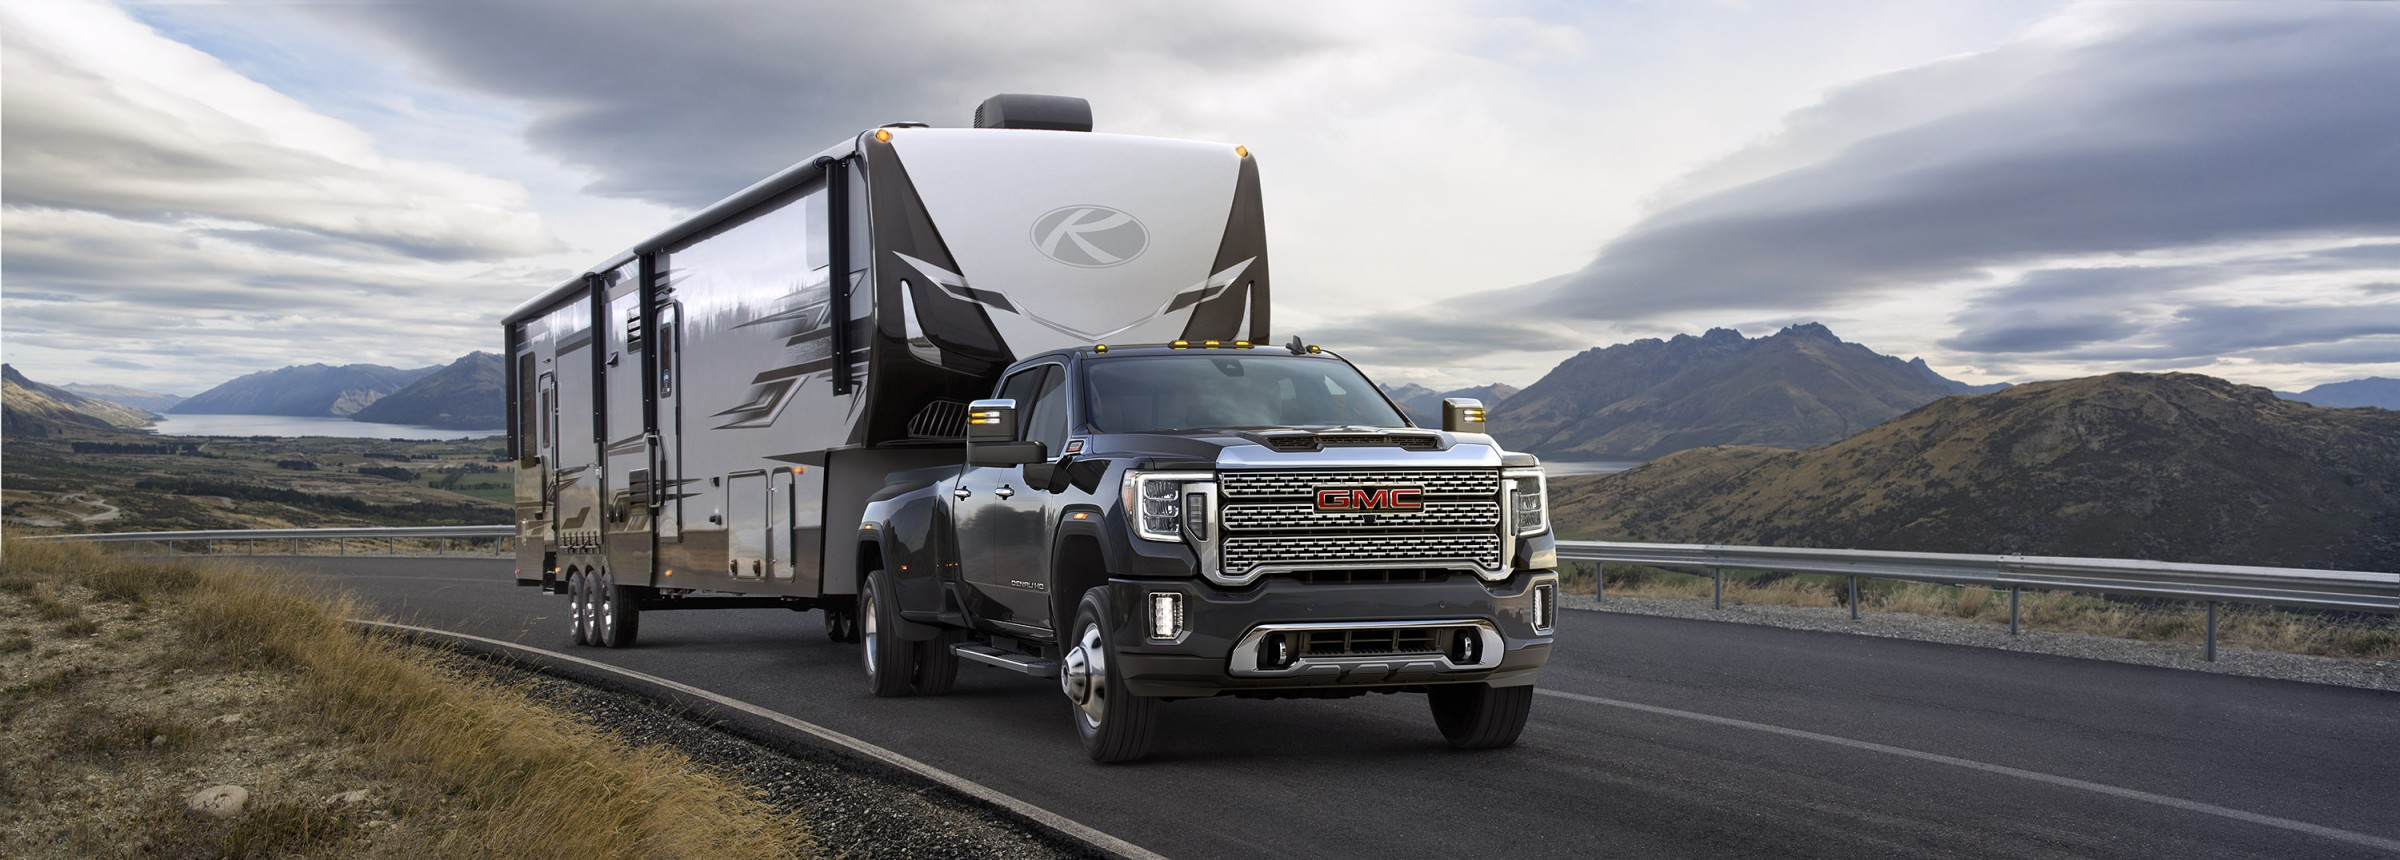 specifications and price of 2021 GMC Sierra 3500 heavy duty in Nigeria